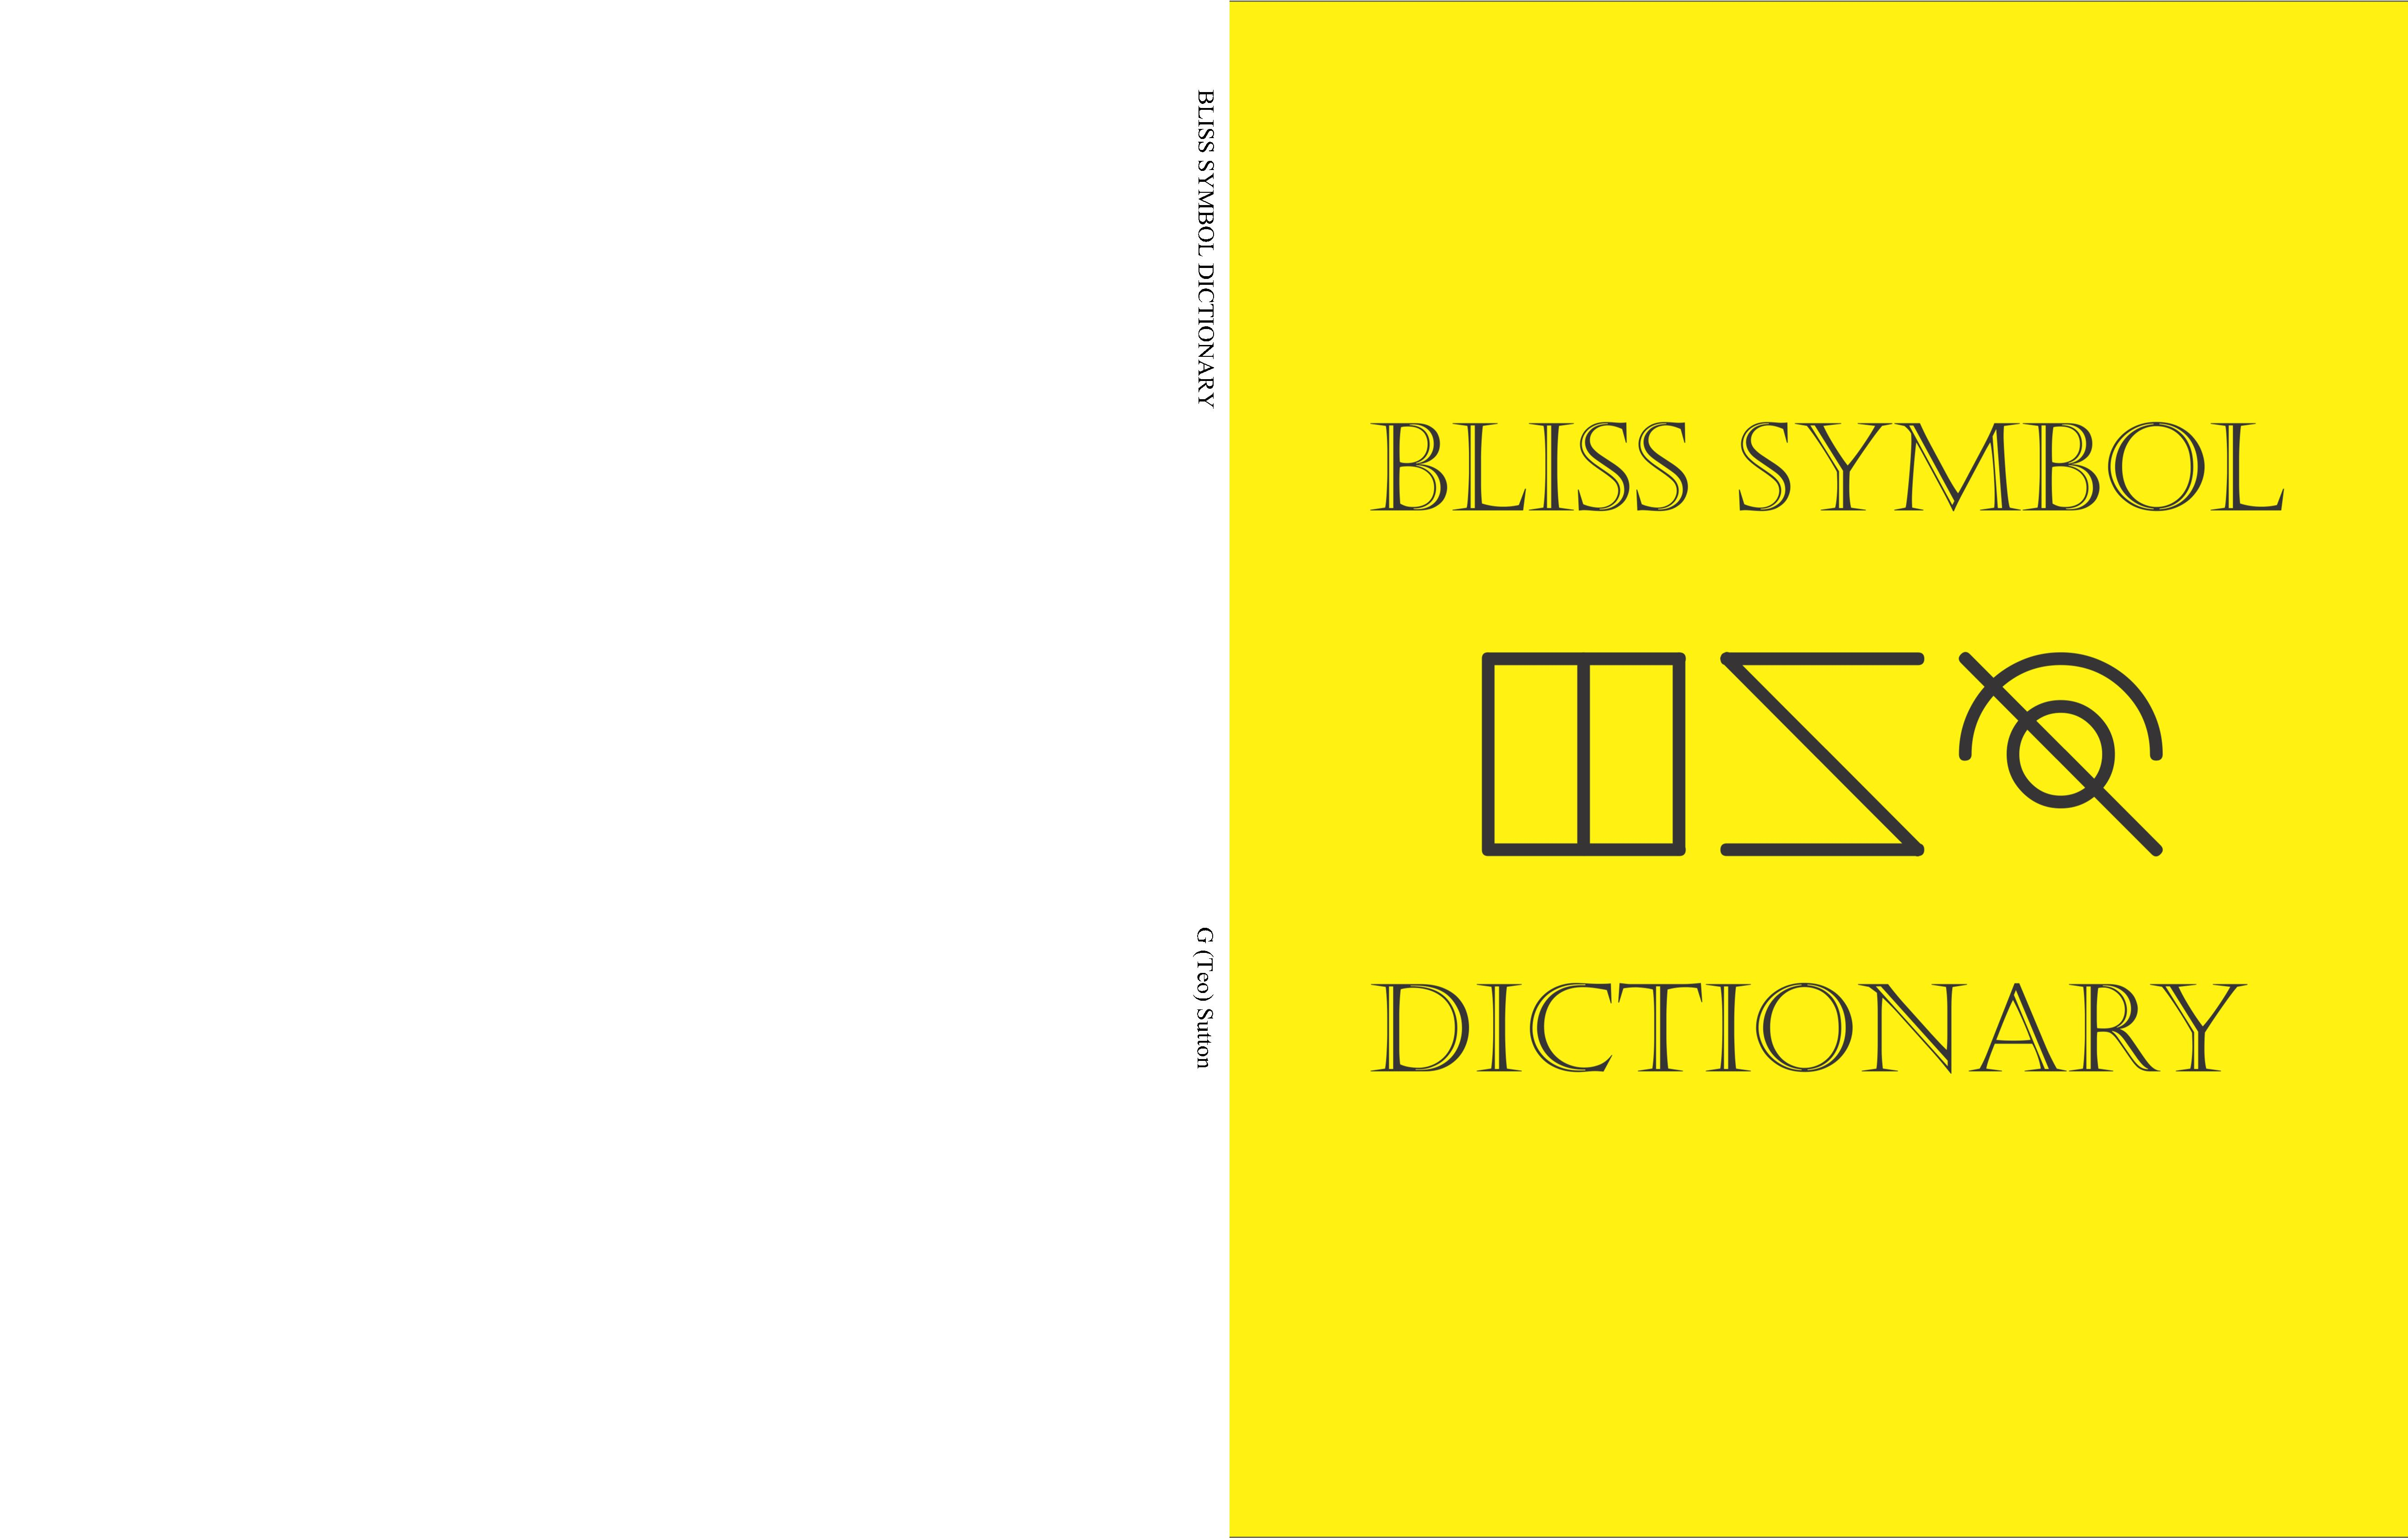 BLISS SYMBOL DICTIONARY cover image